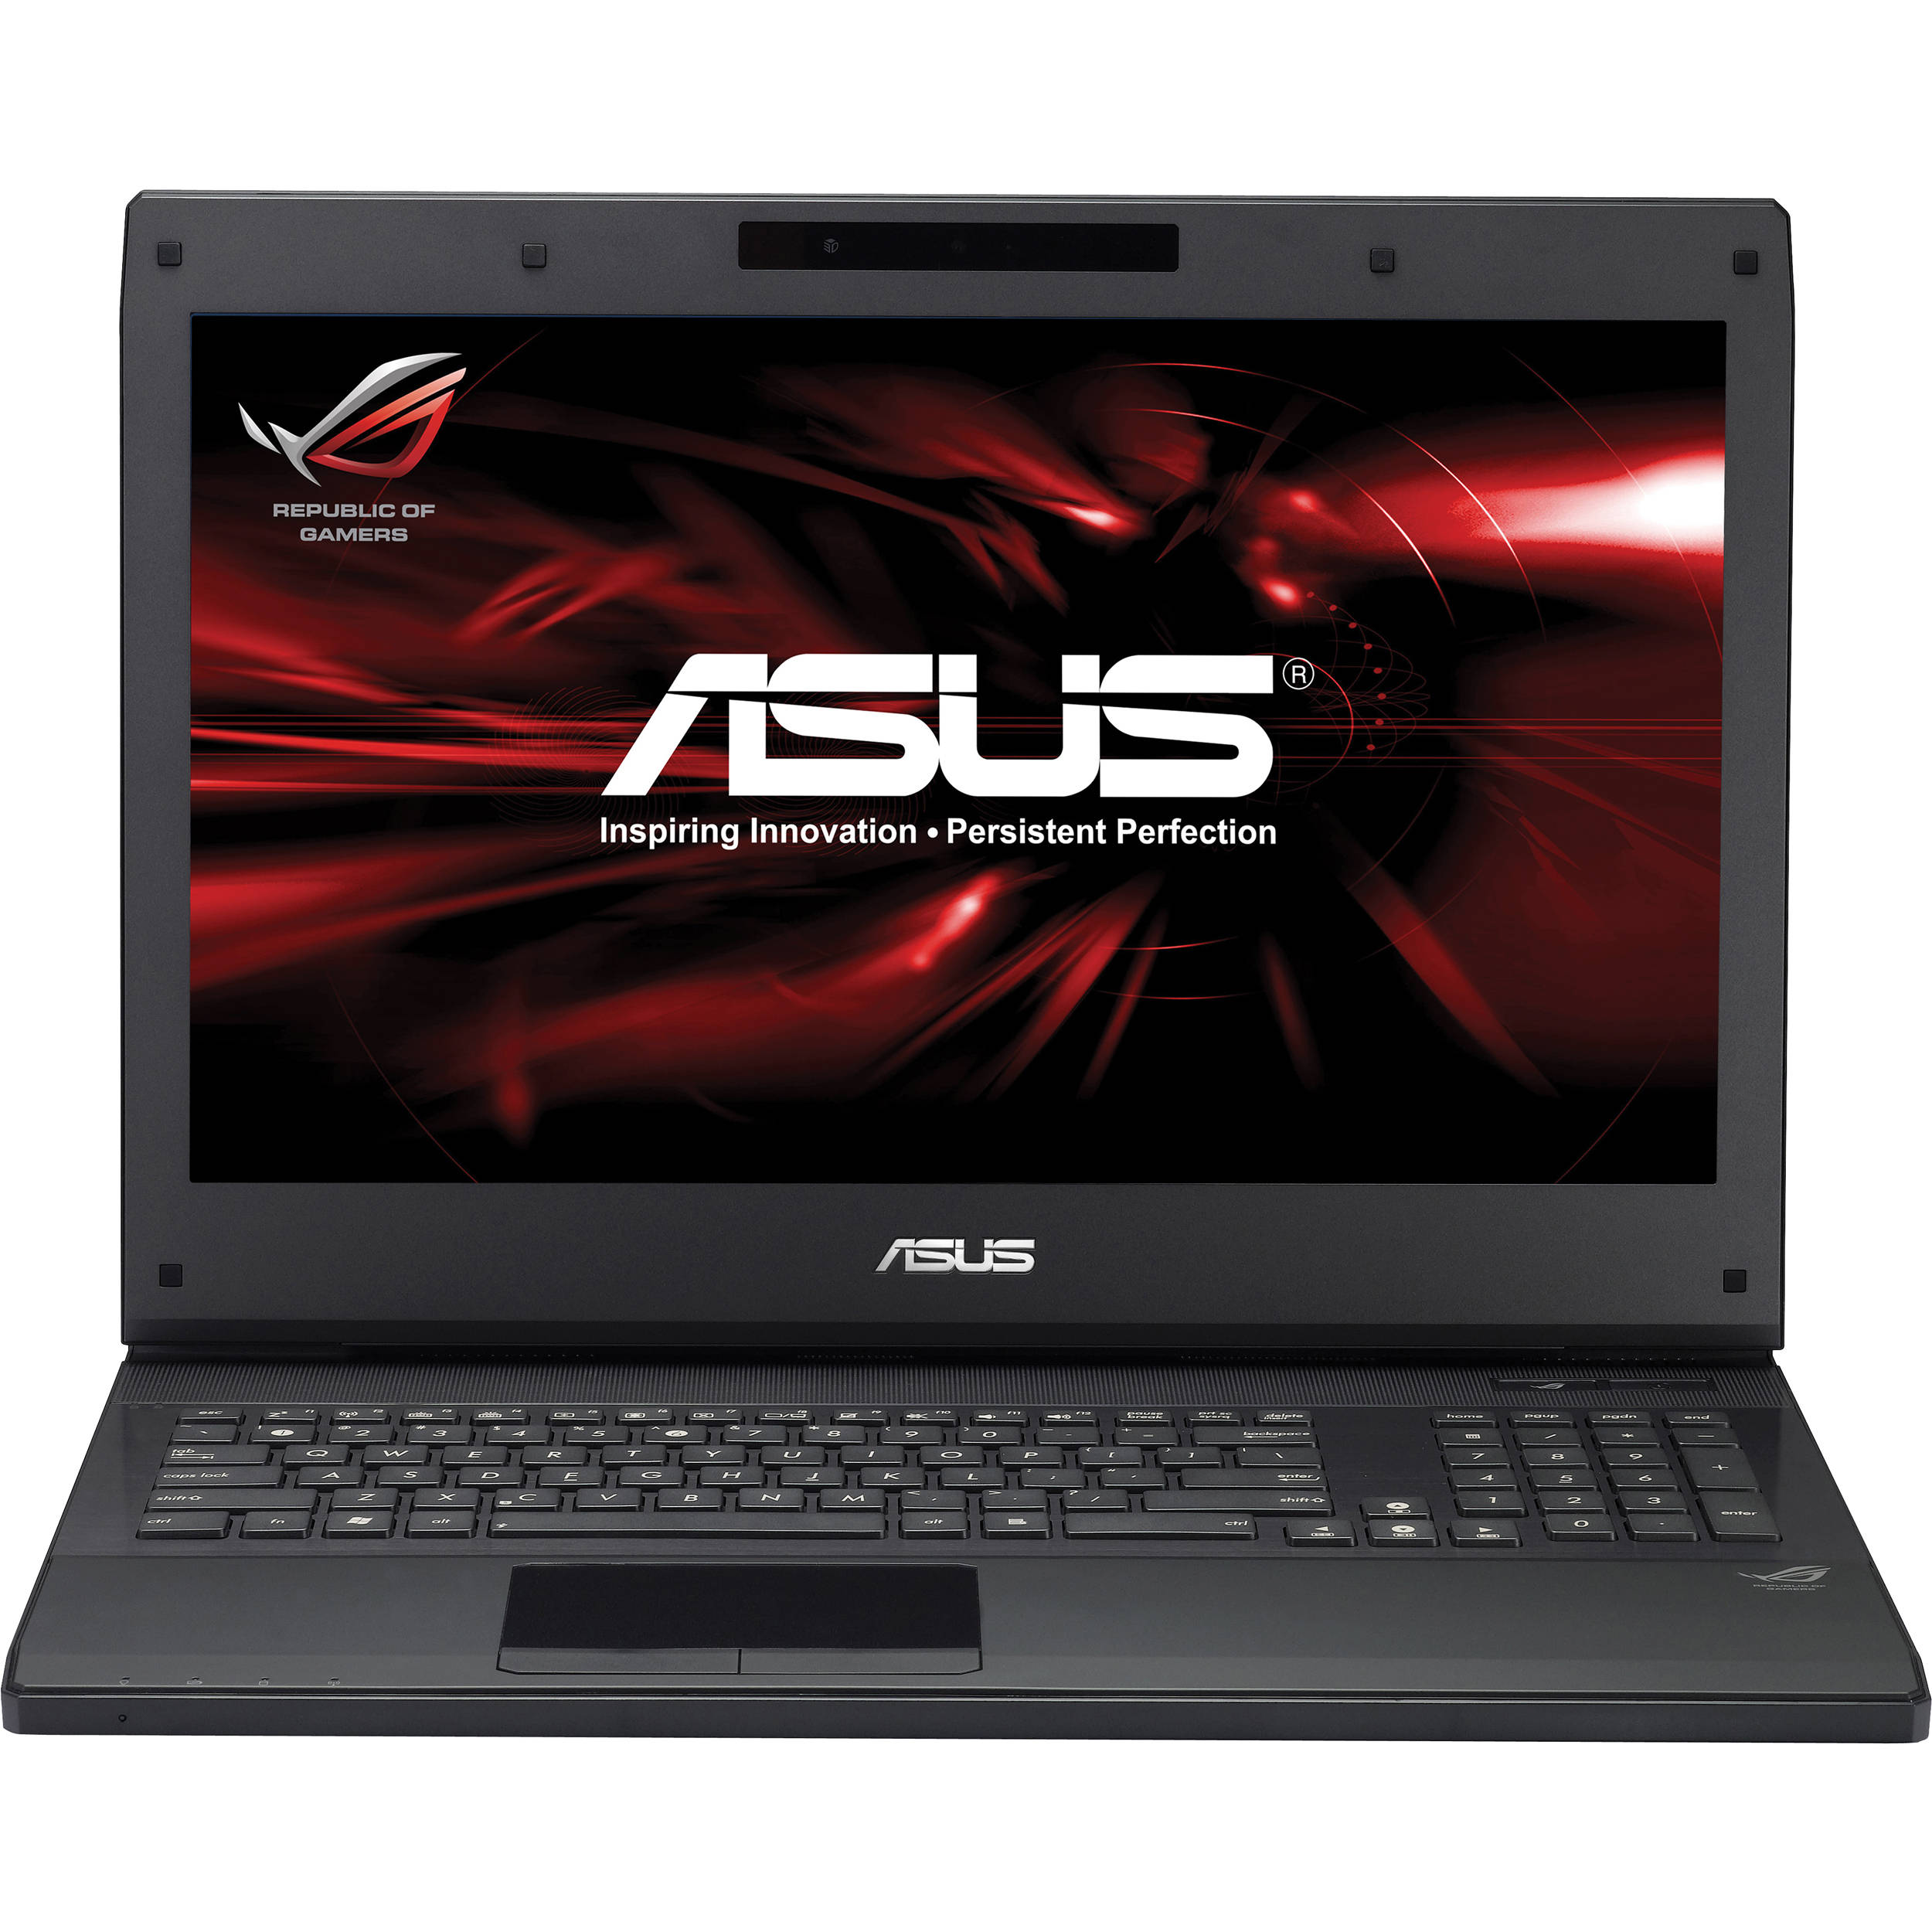 Asus G74Sx Notebook Nvidia Stereoscopic 3D Windows 8